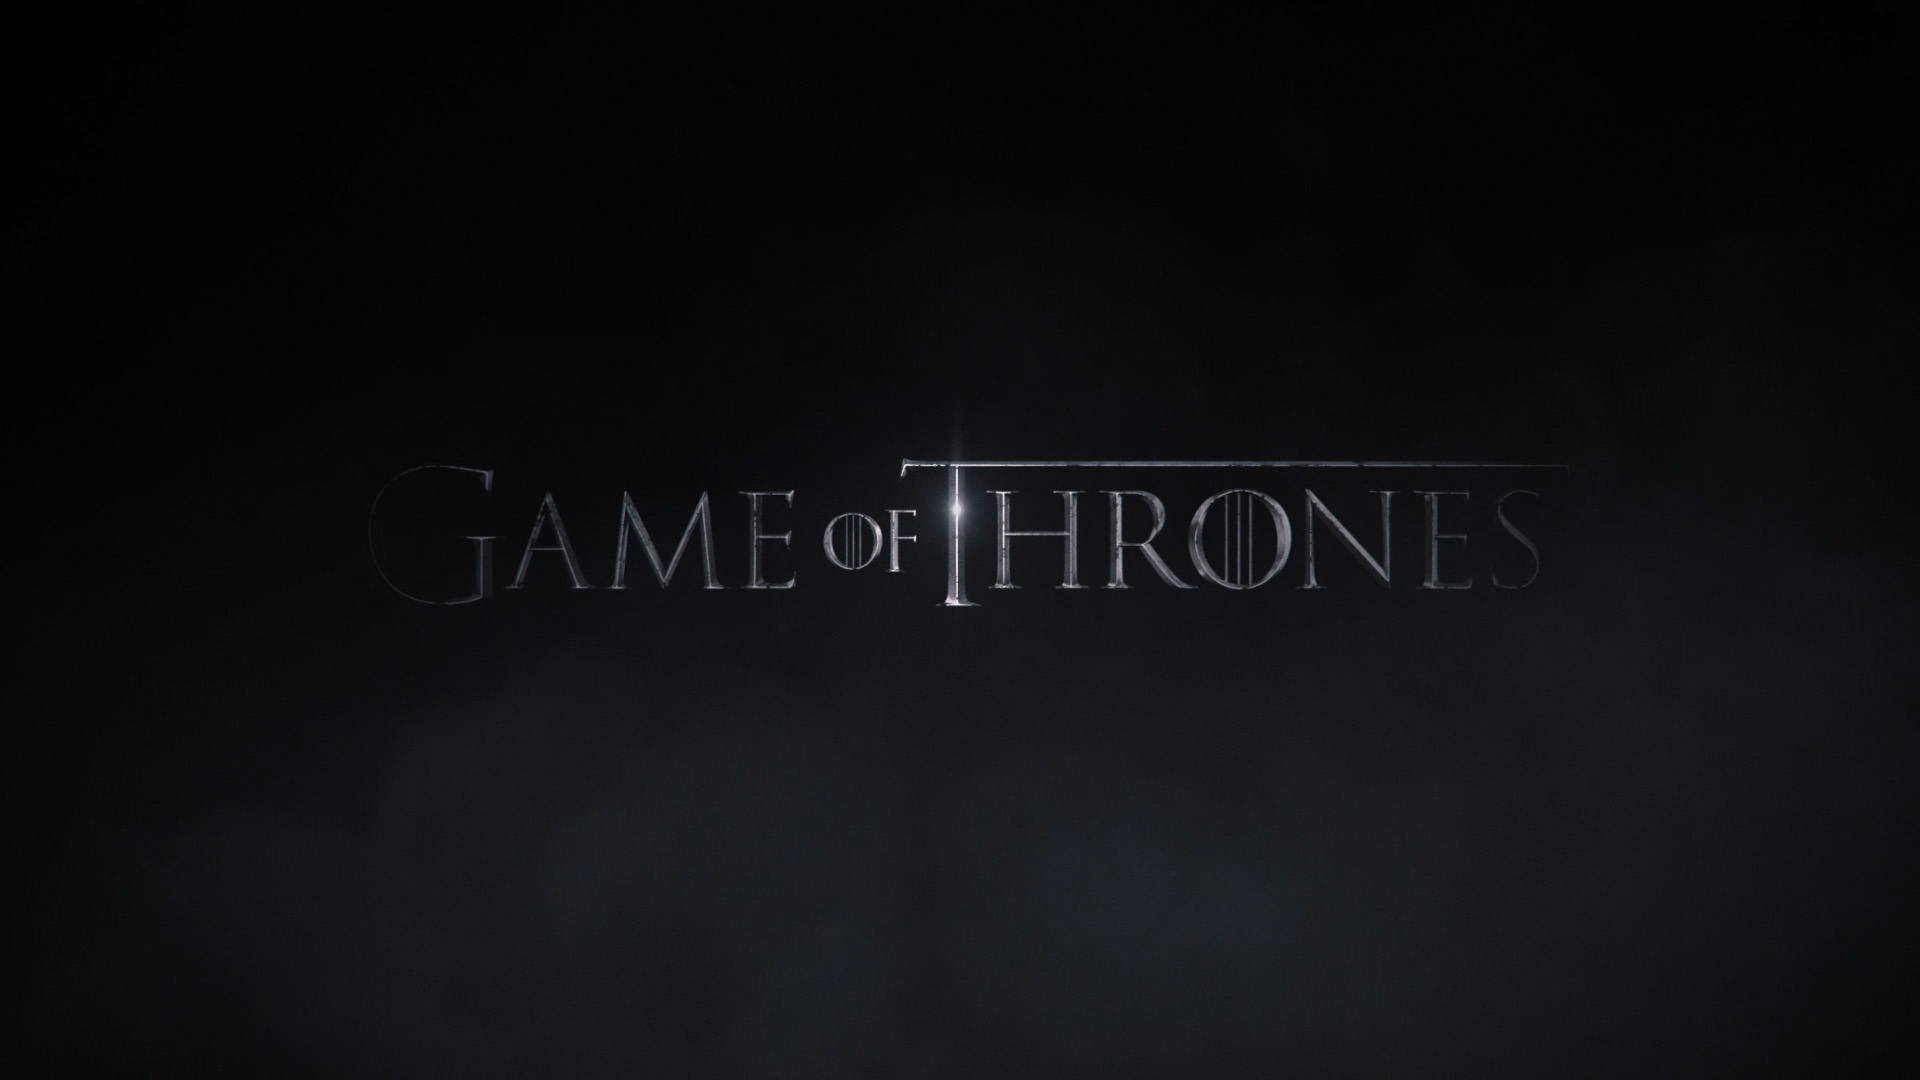 HBO_GOT_s6_Targaryen_1920_1080-0-00-19-02